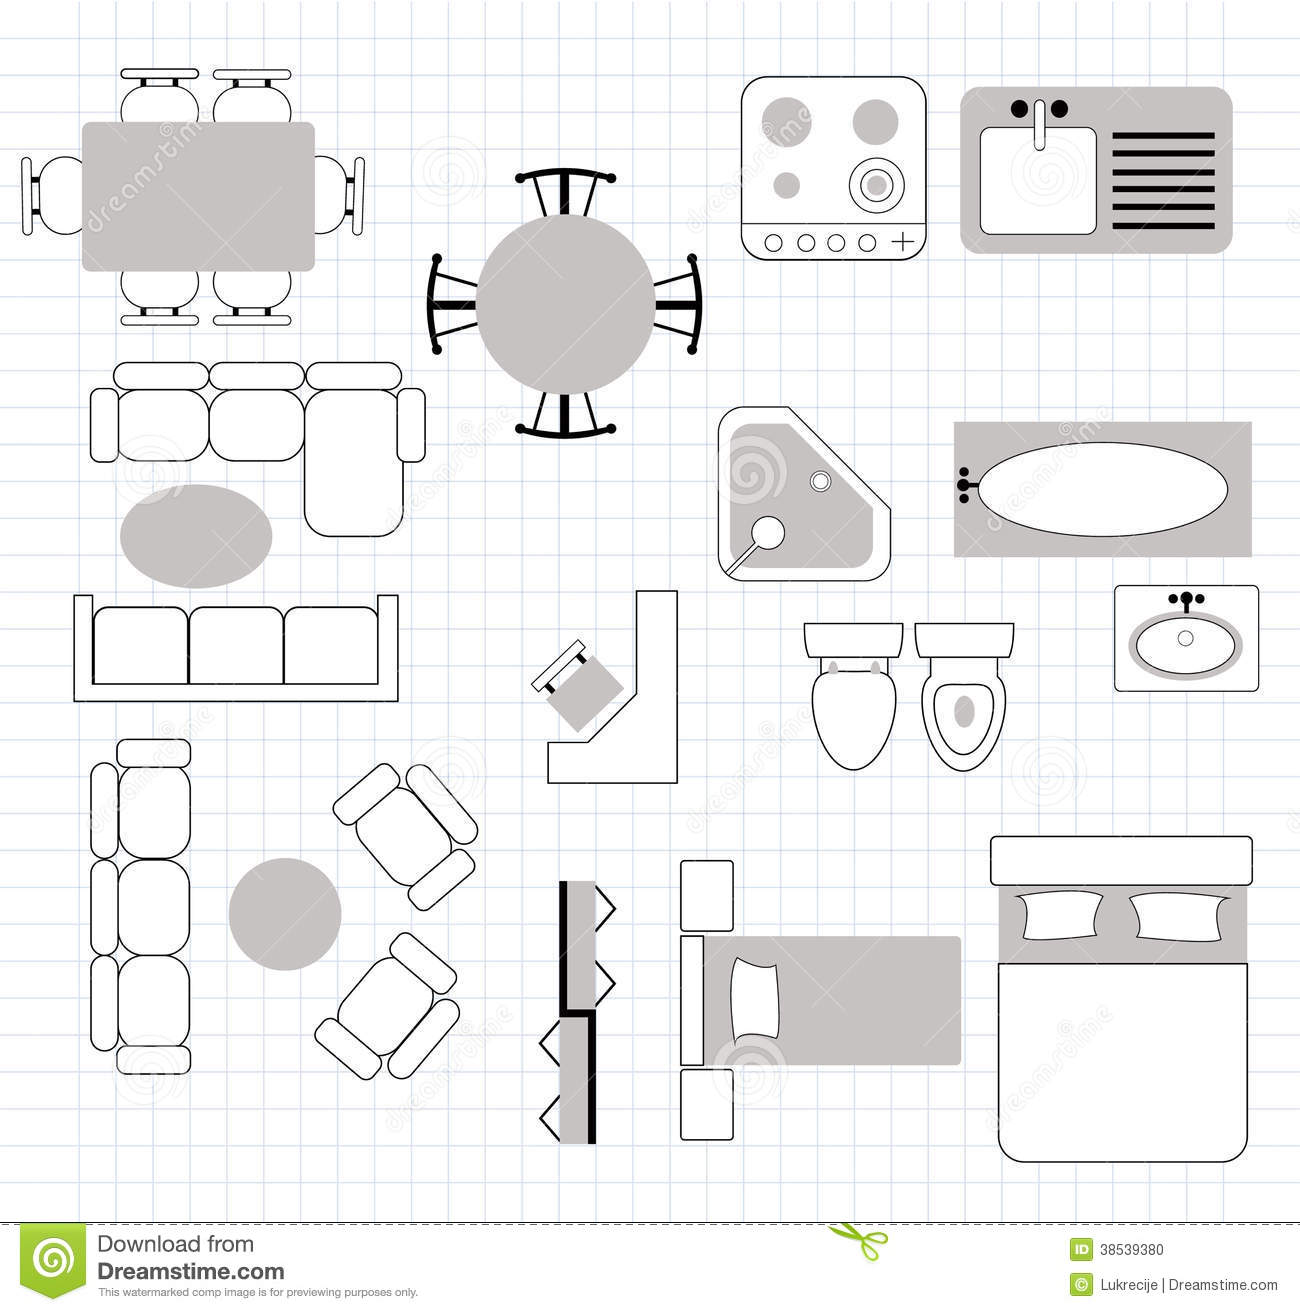 Clipart furniture floor plan clipground for Furniture templates for room design